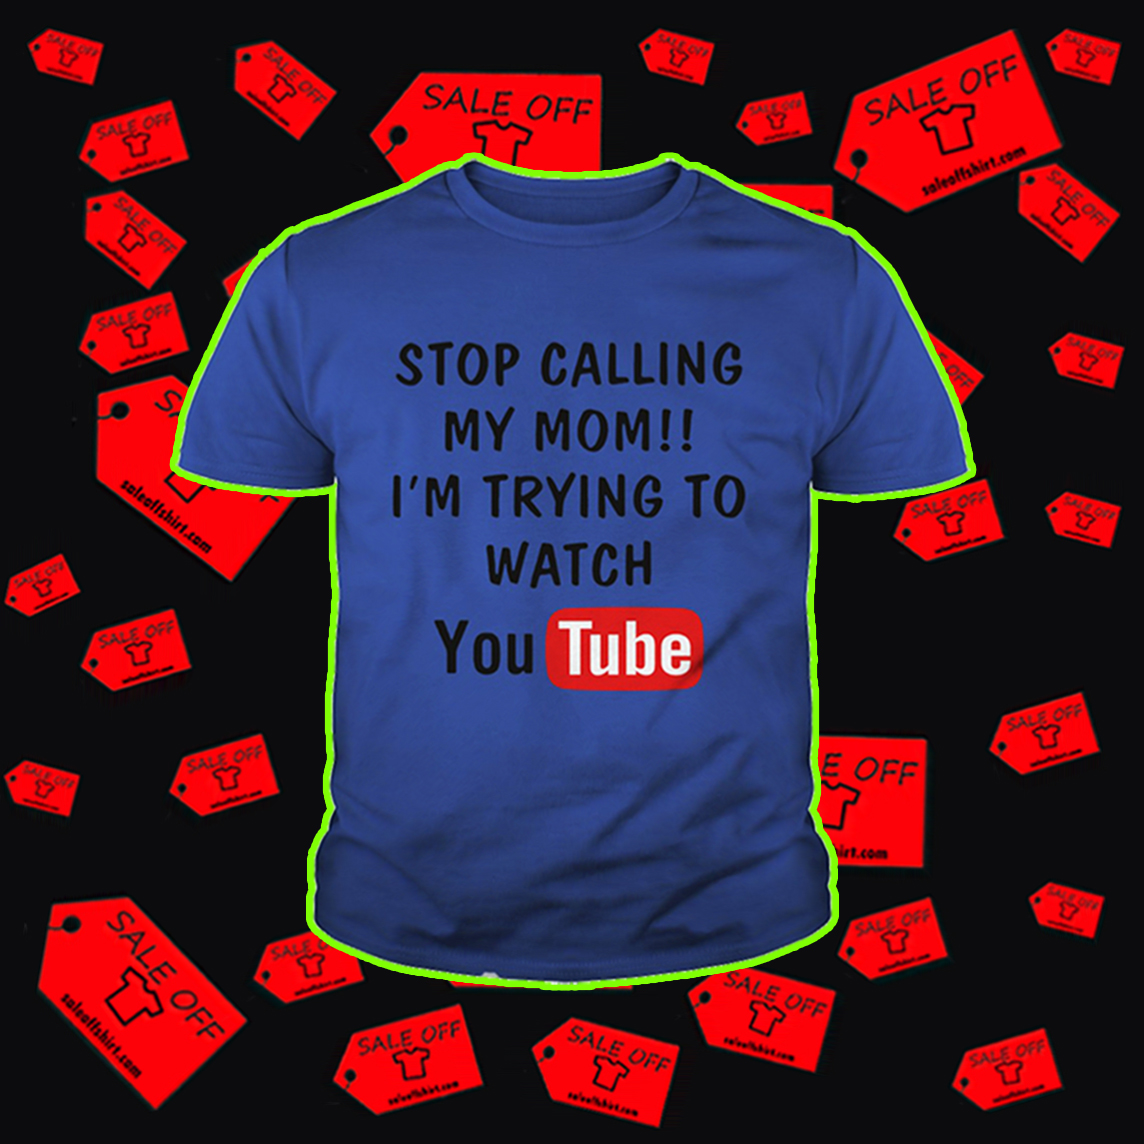 Stop calling my mom I'm trying to watch youtube youth tee - blue